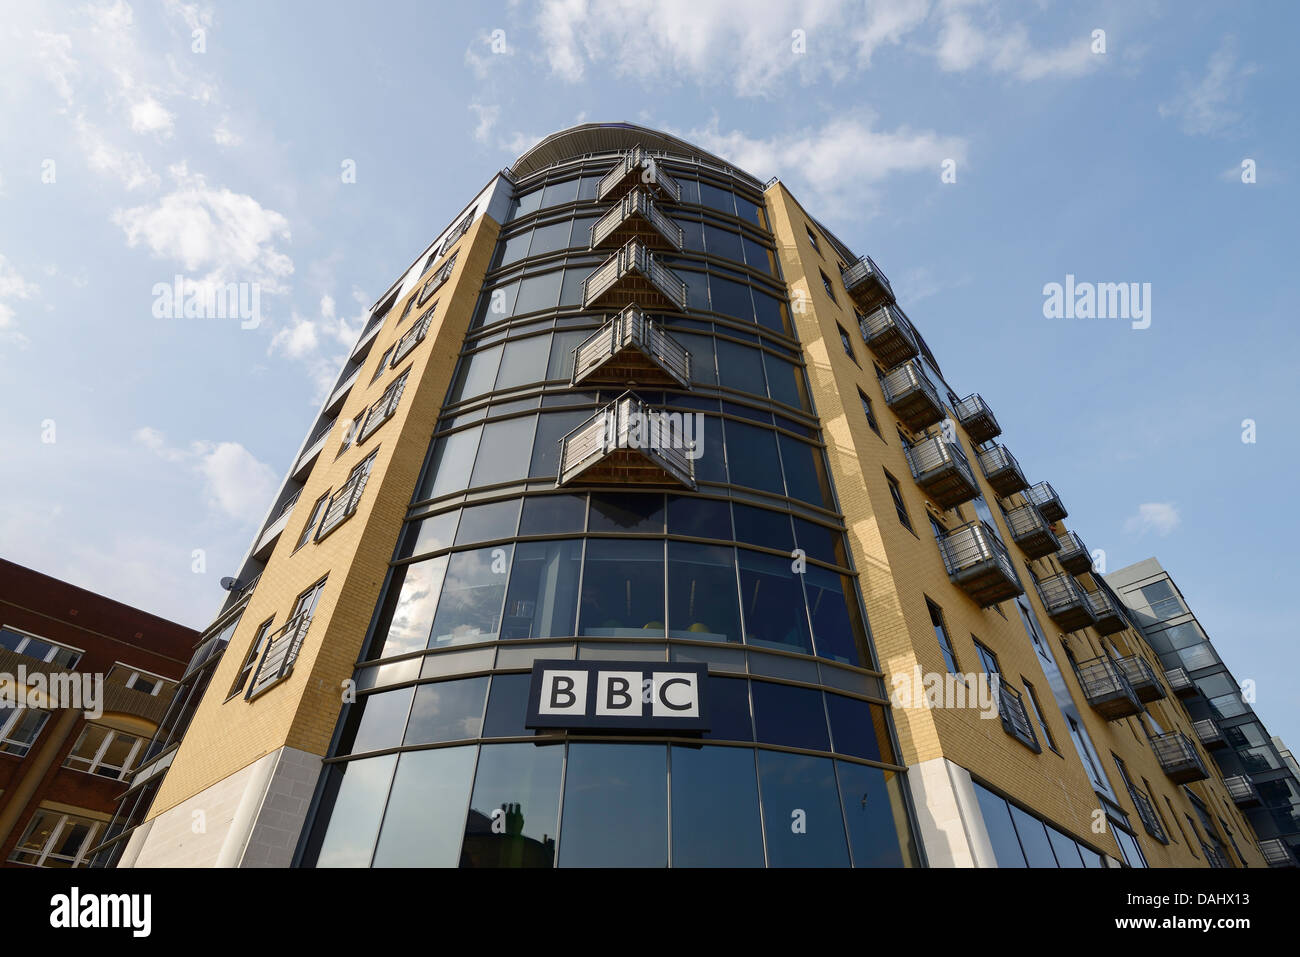 The BBC offices in Hull city centre - Stock Image